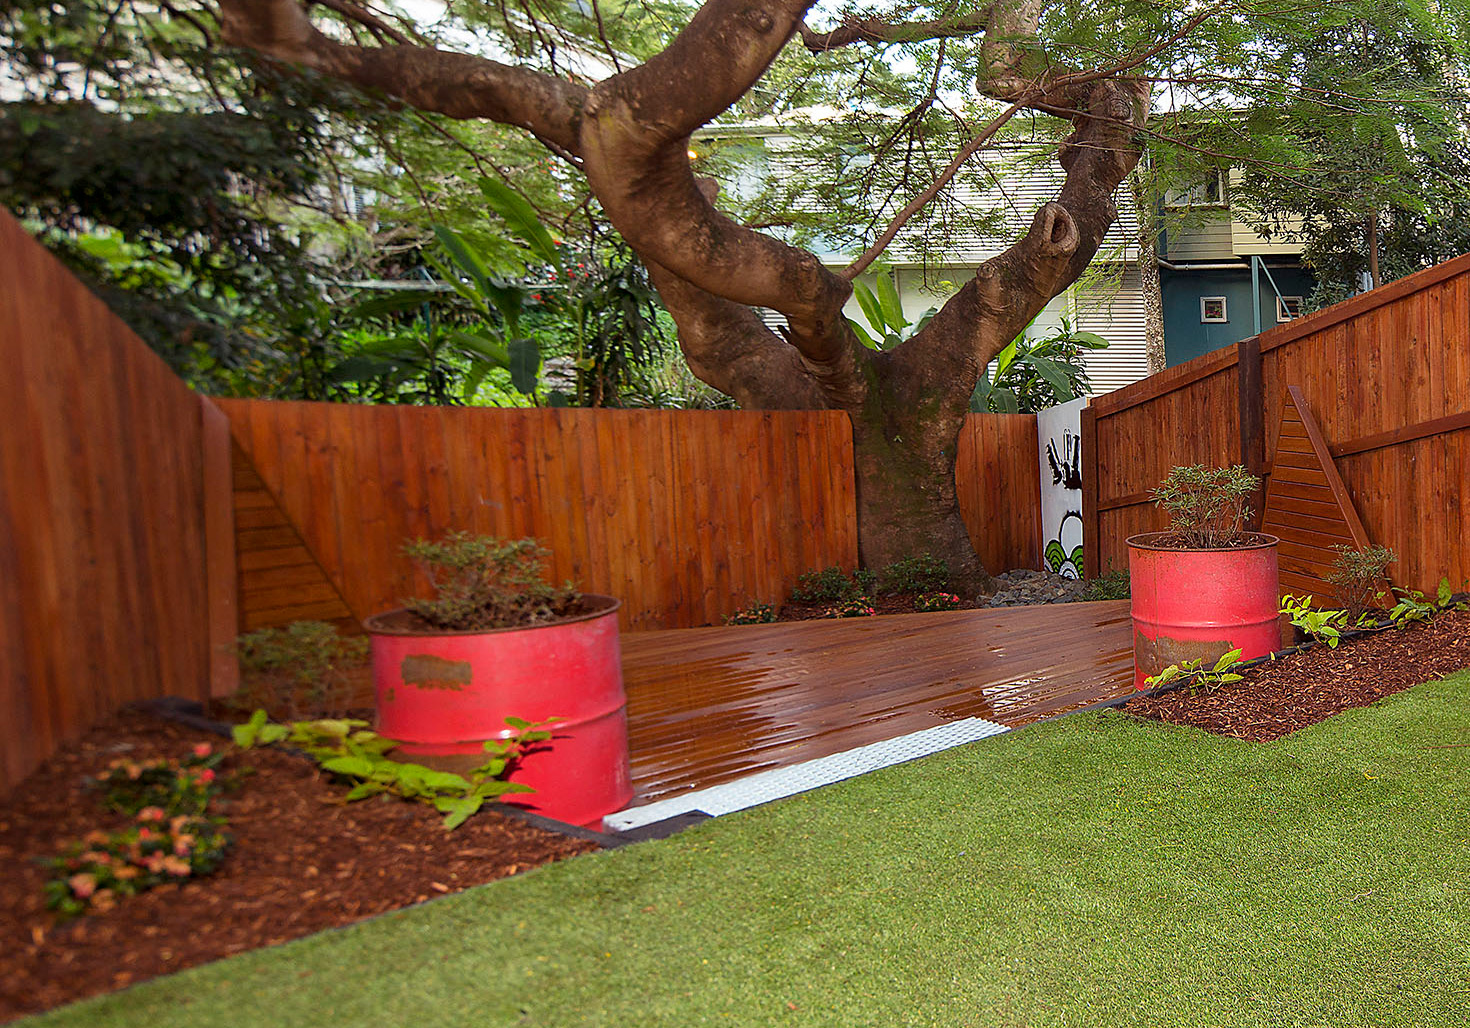 Landscaping Garden Brisbane : Hendra brisbane landscape mt gravatt an effective garden make